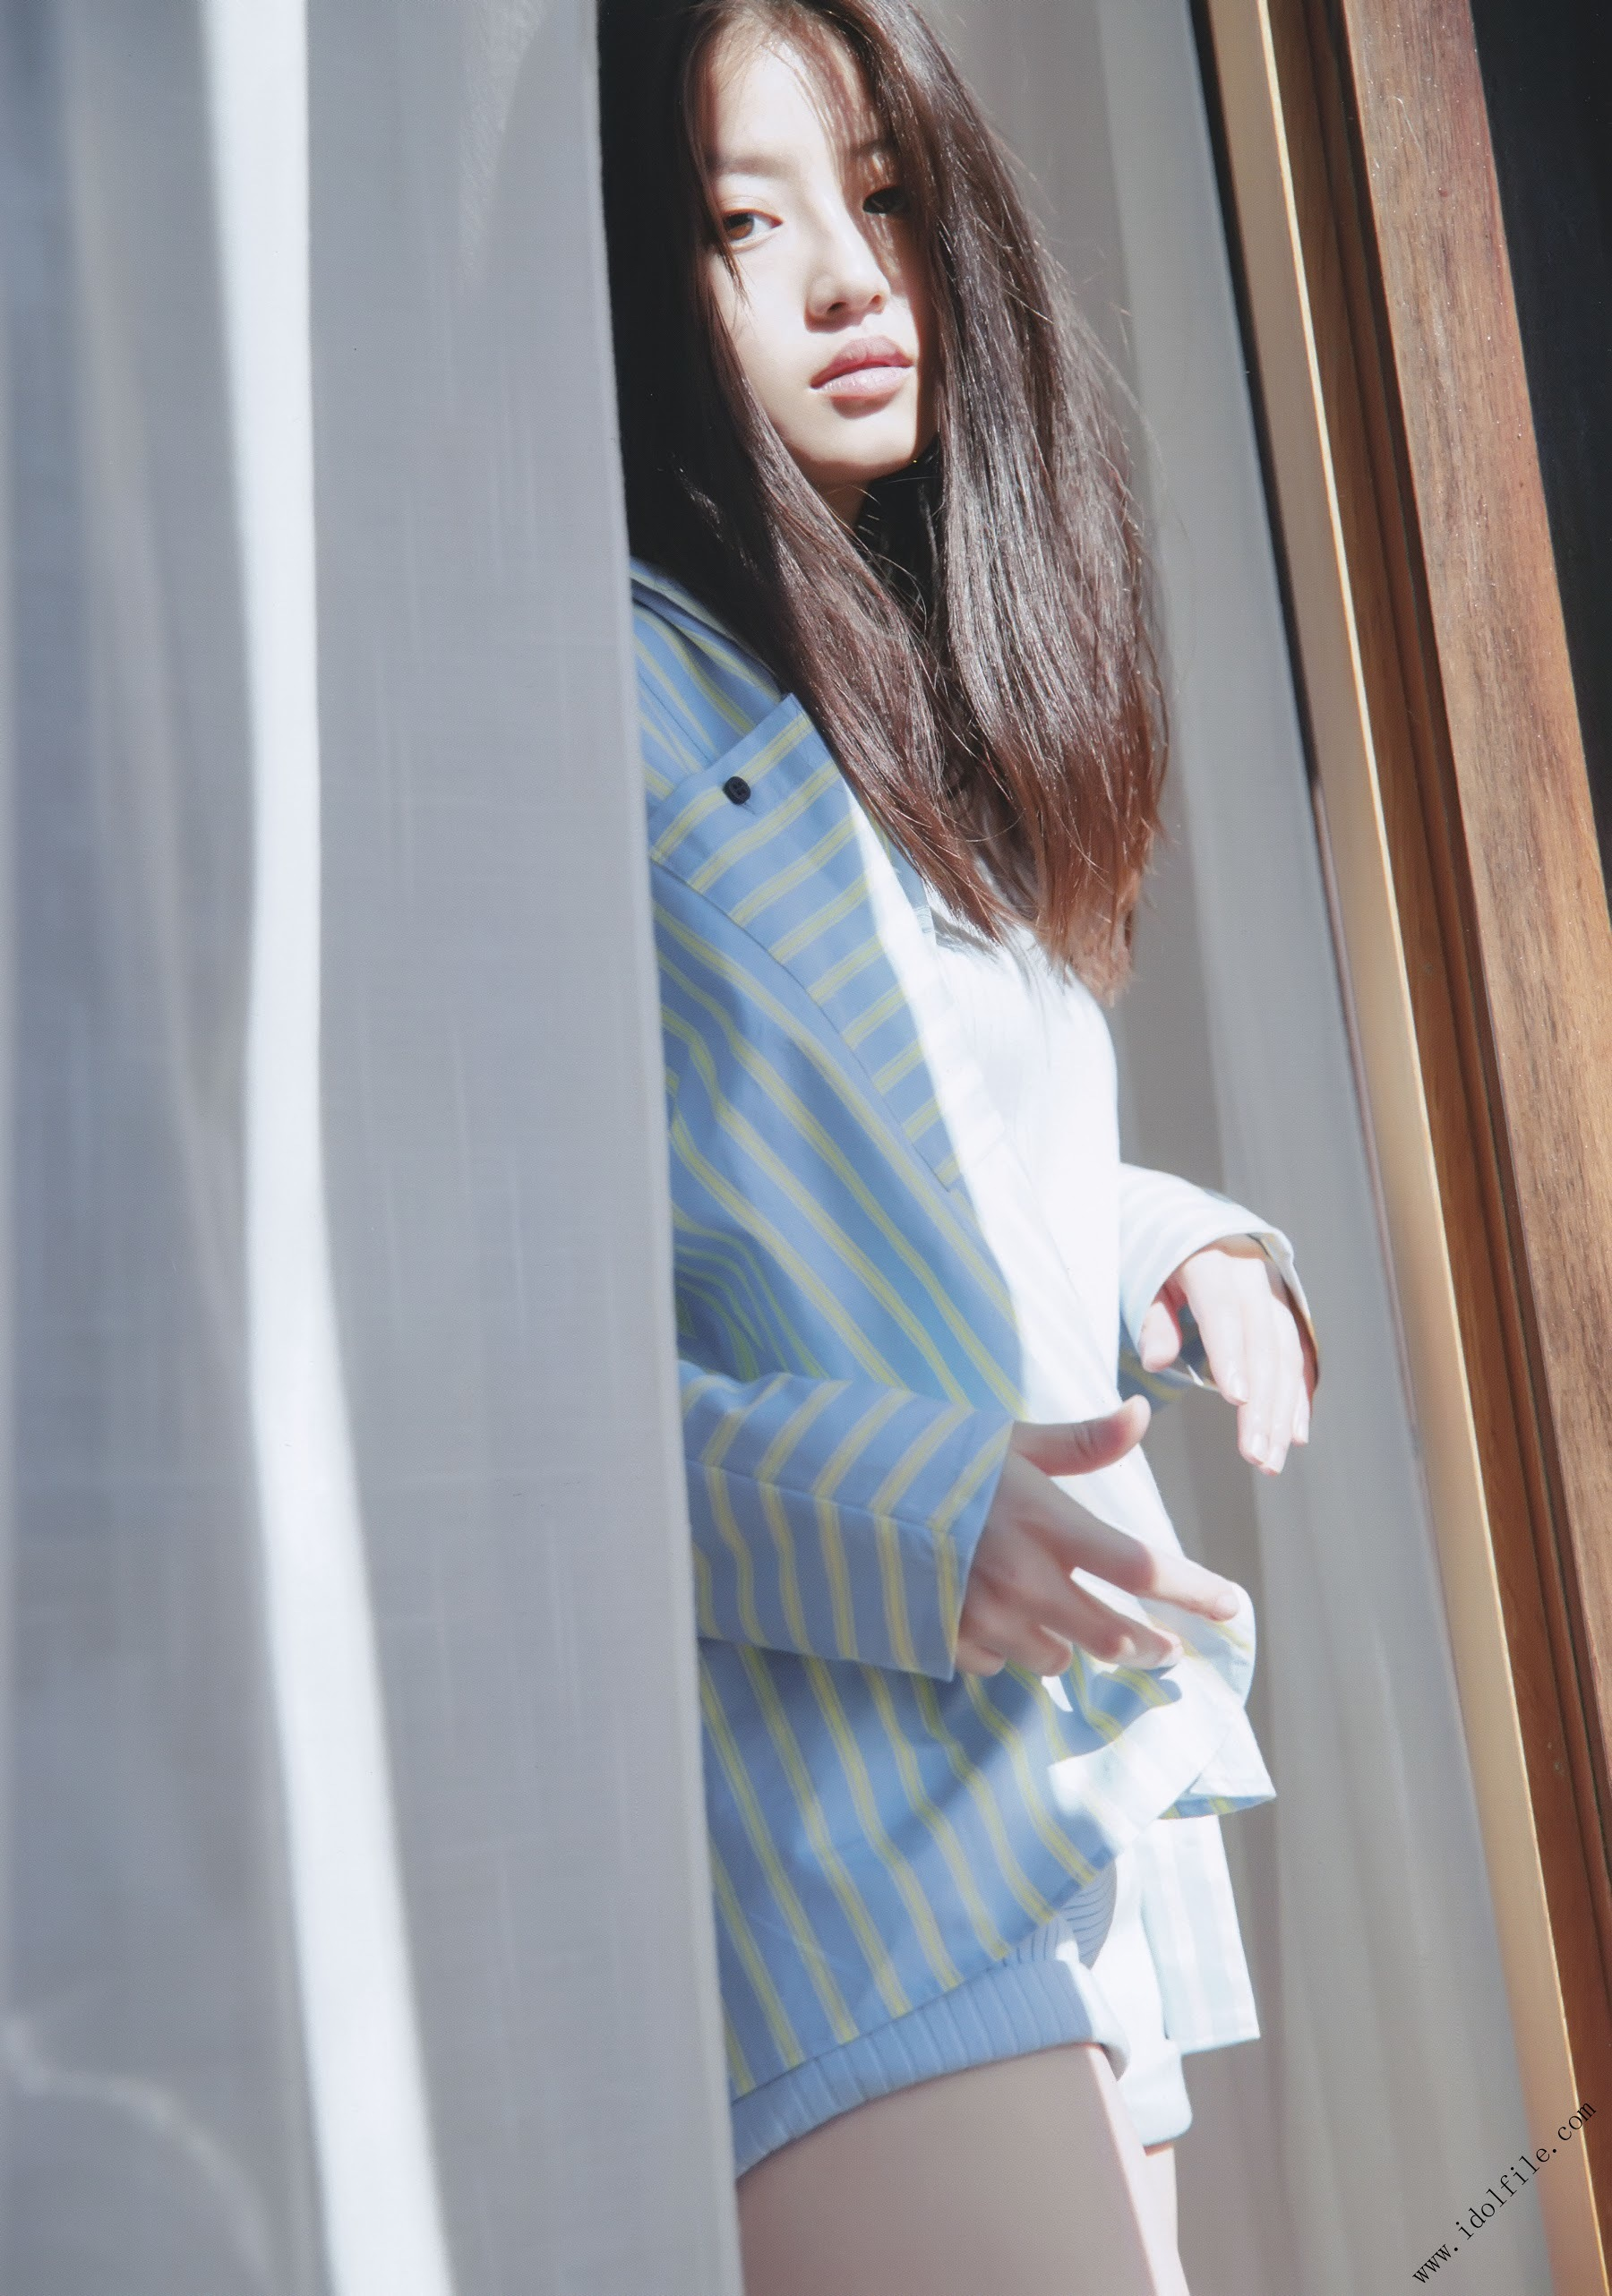 Pretty and beautiful, 22 years old and innocent Moving to the next stage as an actress Mio Imada065